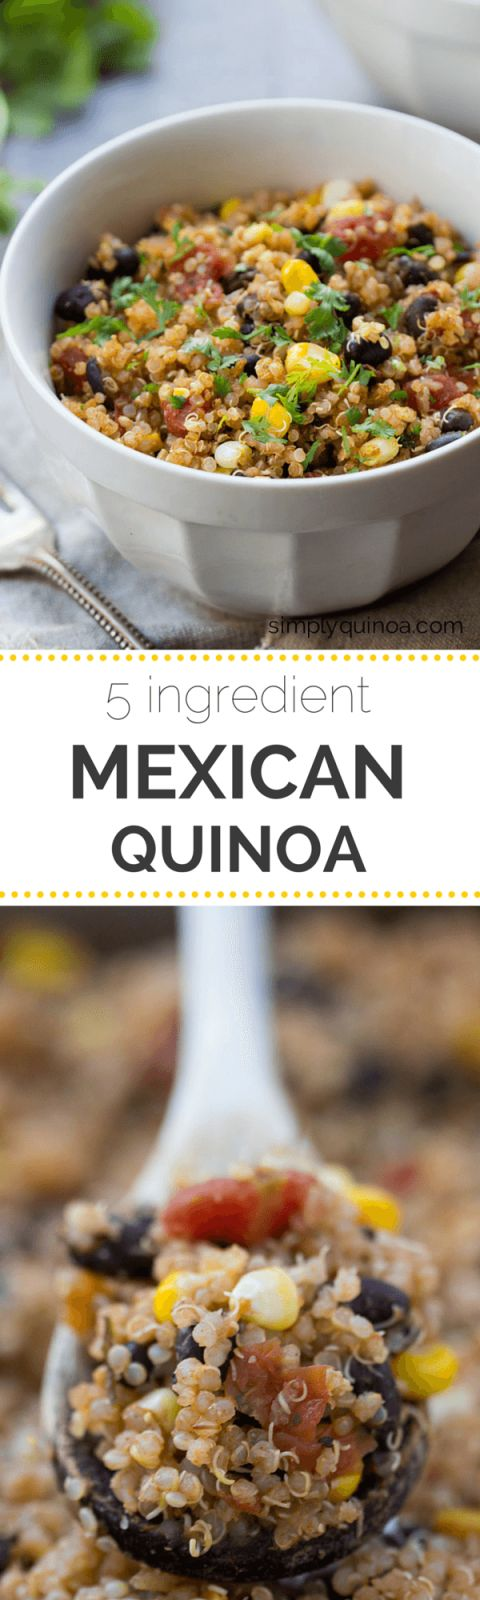 Easy Mexican Quinoa using only 5-ingredients! A quick and healthy dinner everyone will love   recipe on simplyquinoa.com